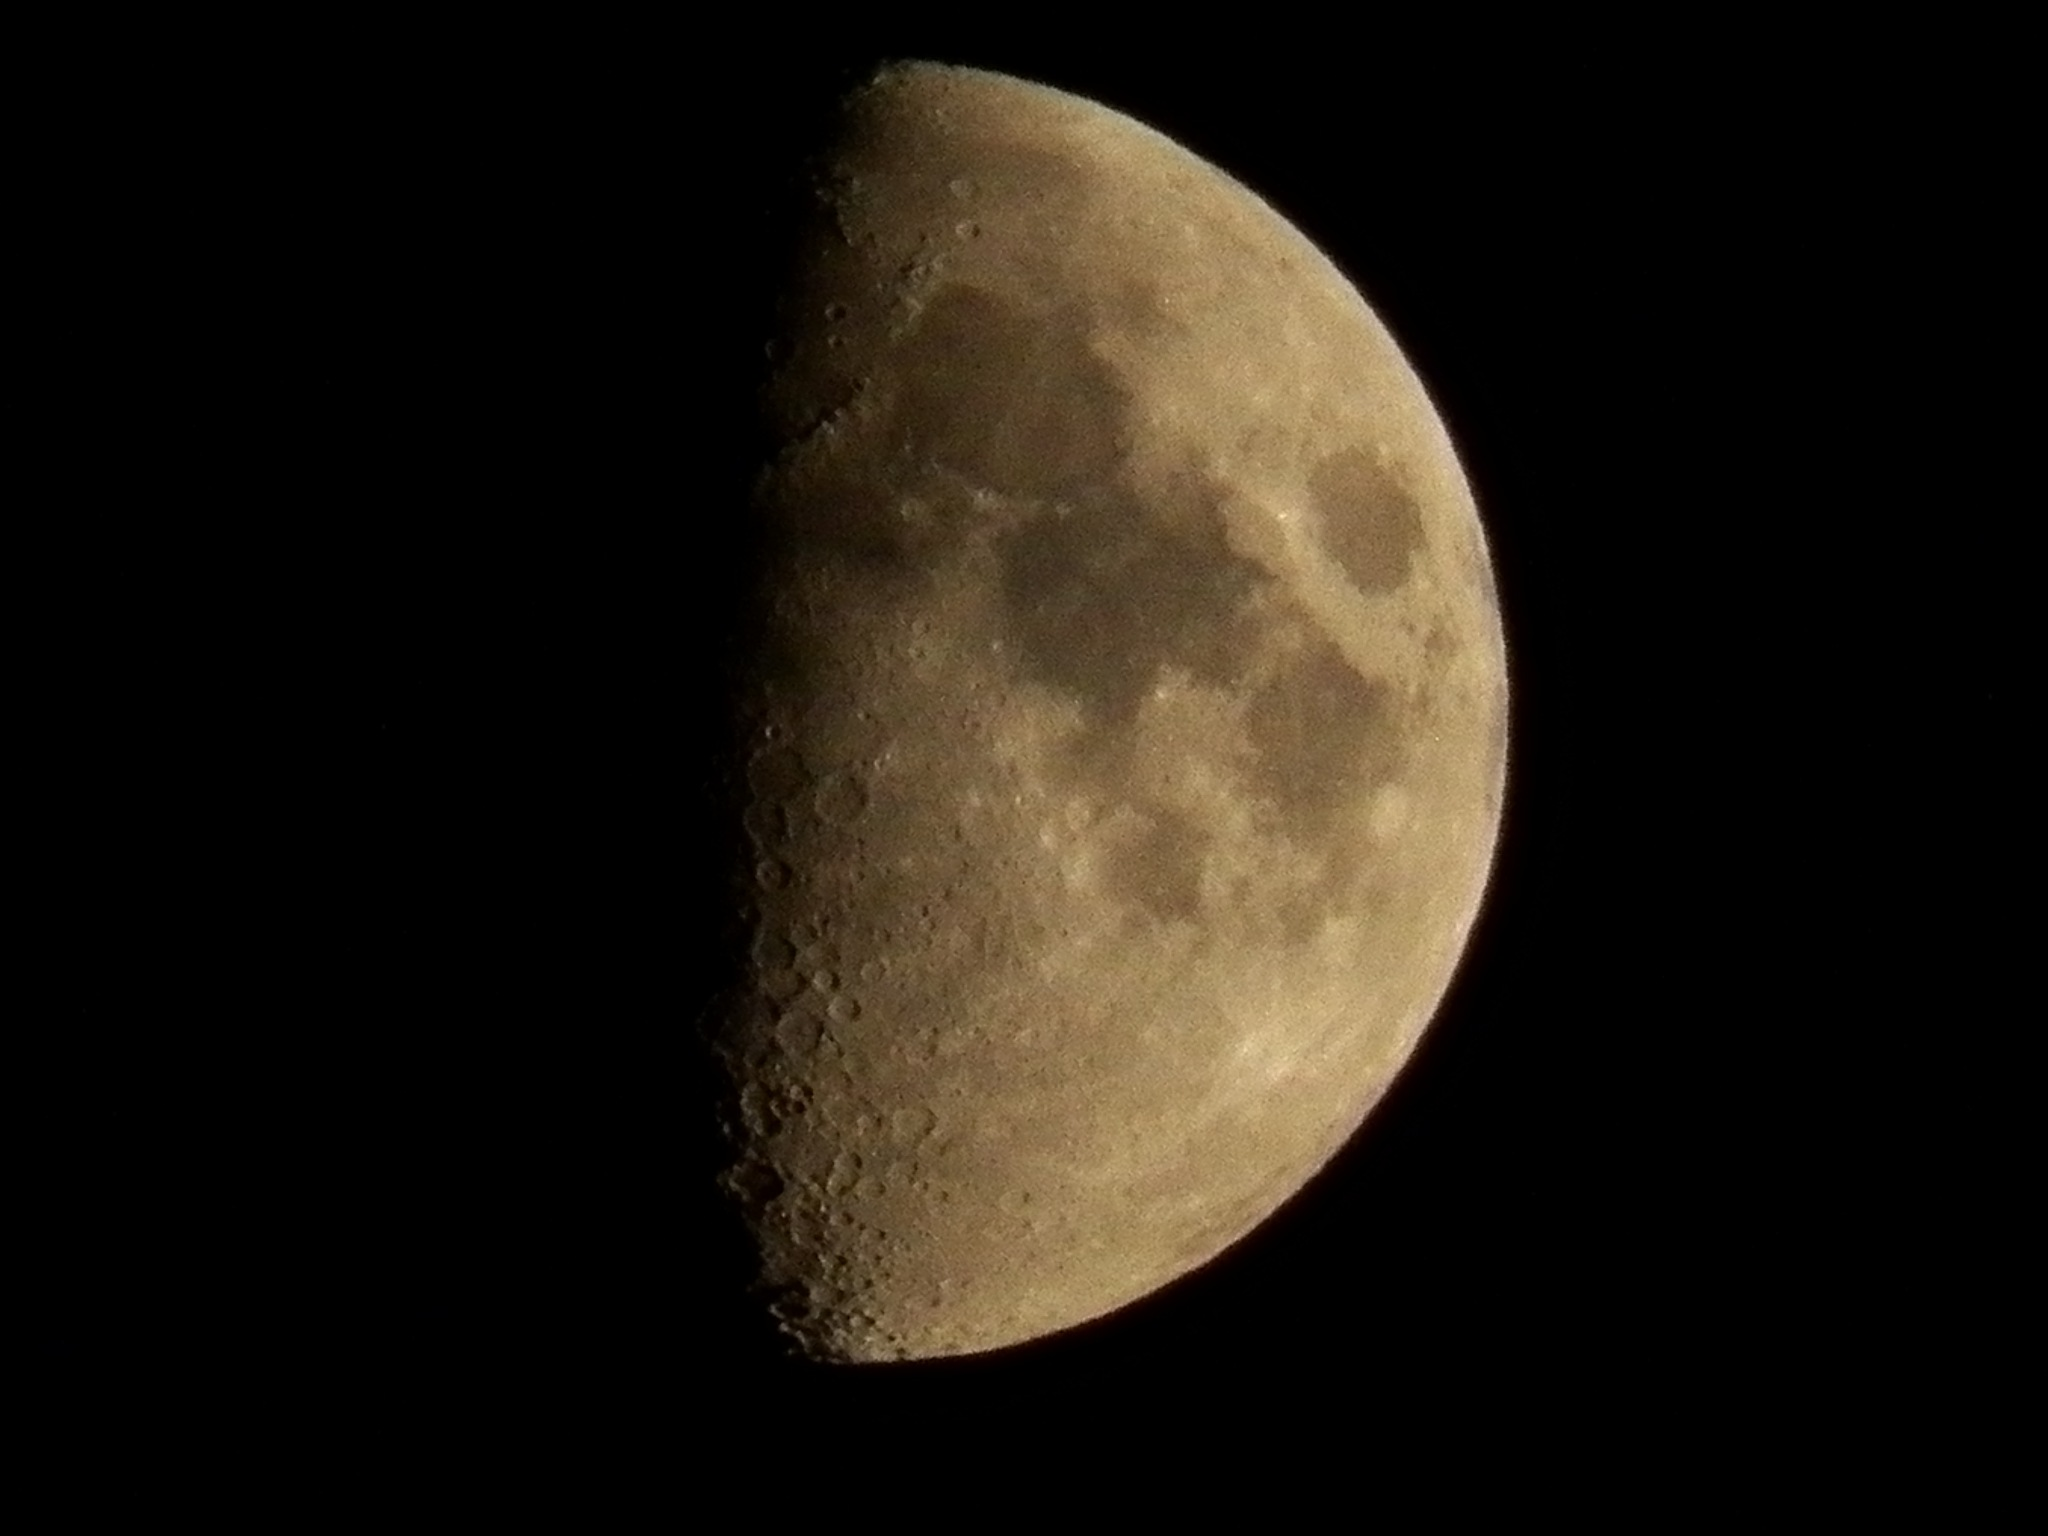 Tonights Moon by Tracie